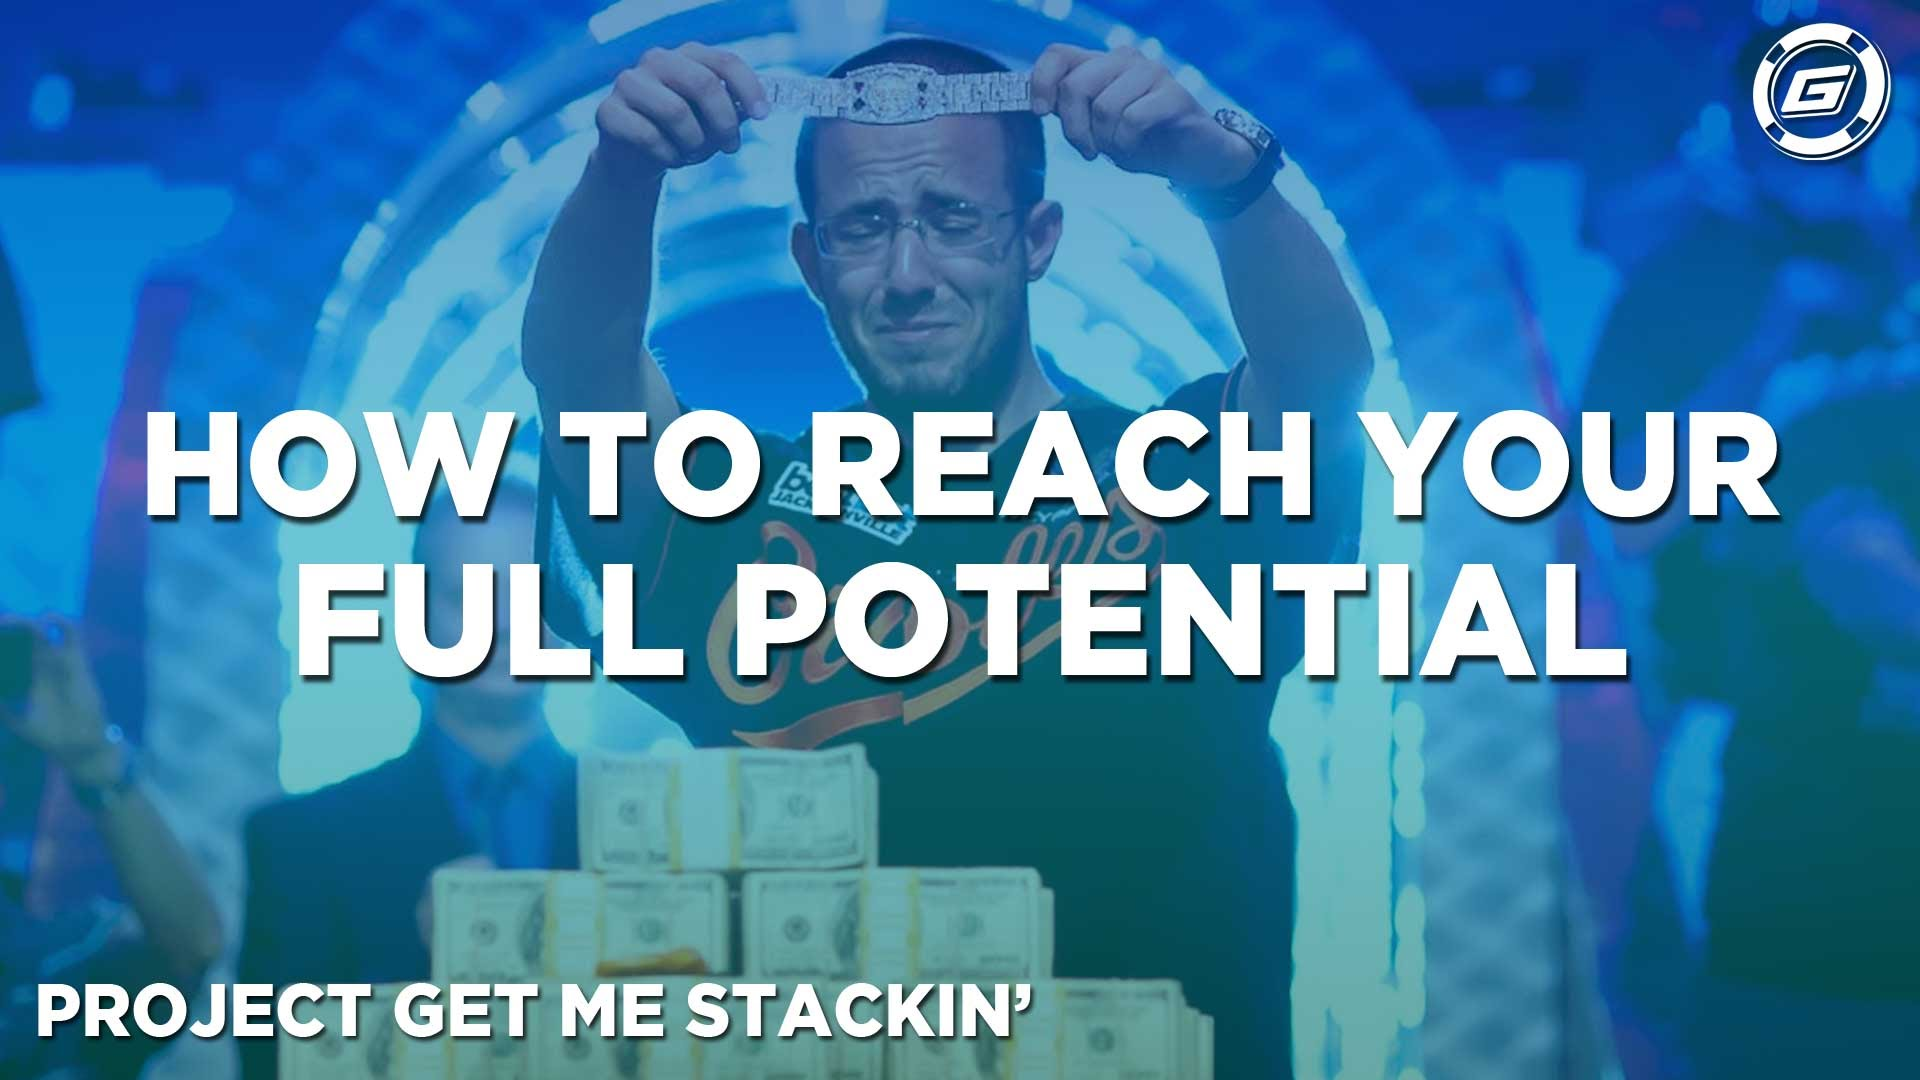 Reach Your Full Potential -     Get Gripsed! - LESSON #2